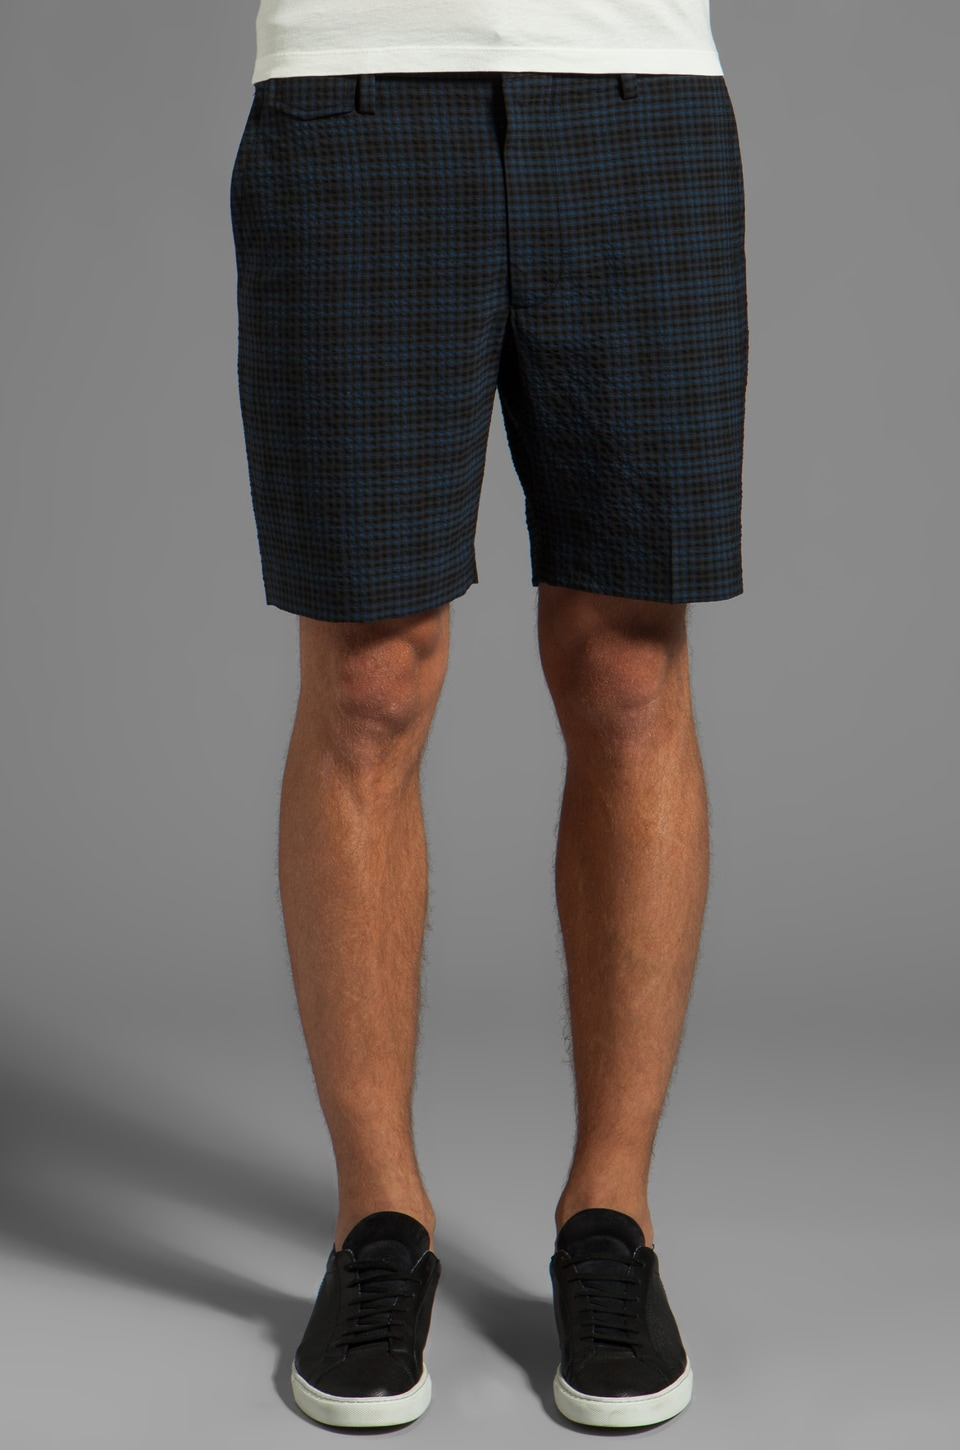 Marc by Marc Jacobs Easton Check Short in Washed Ink Multi